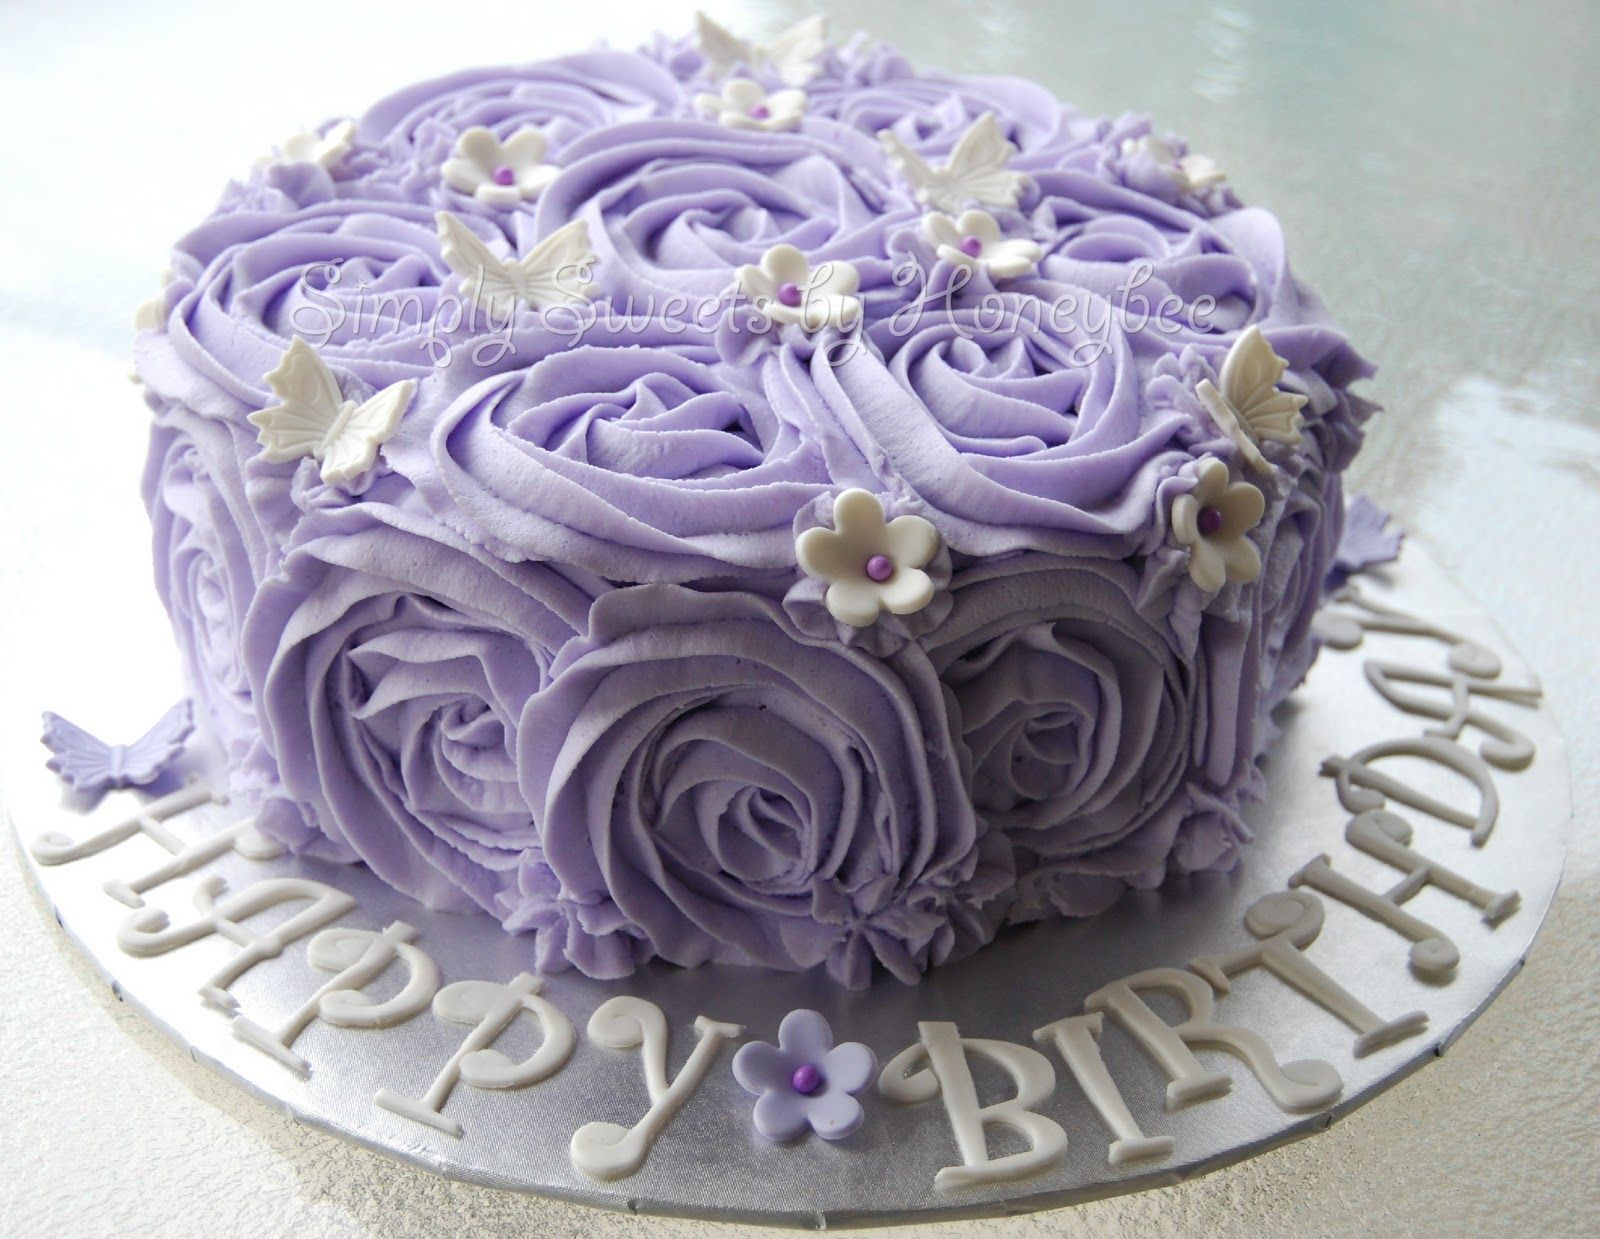 Simply Sweets by Honeybee Lavender Rose Cake perfect for